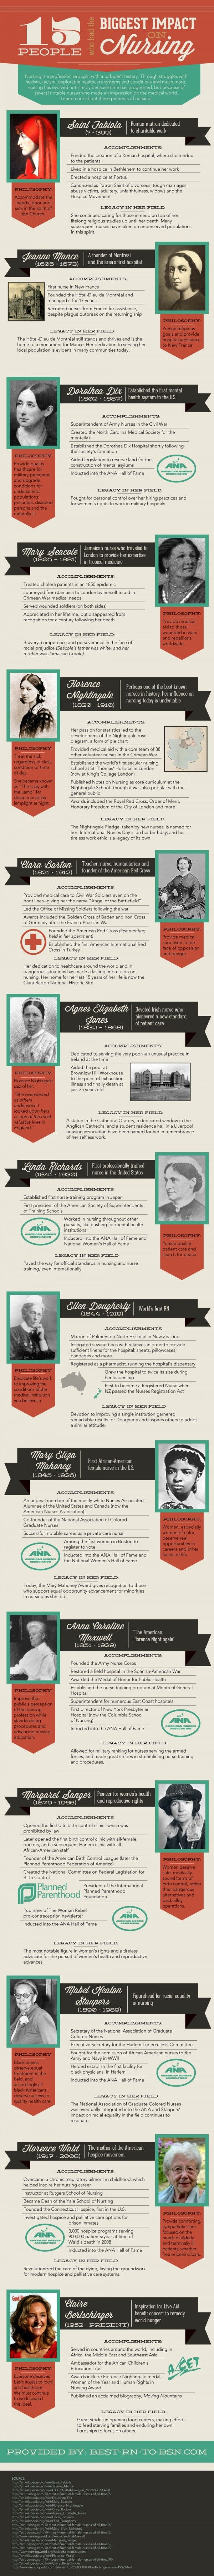 15 People Who Have Had The Biggest Impact On Nursing - History of Nursing Infographic